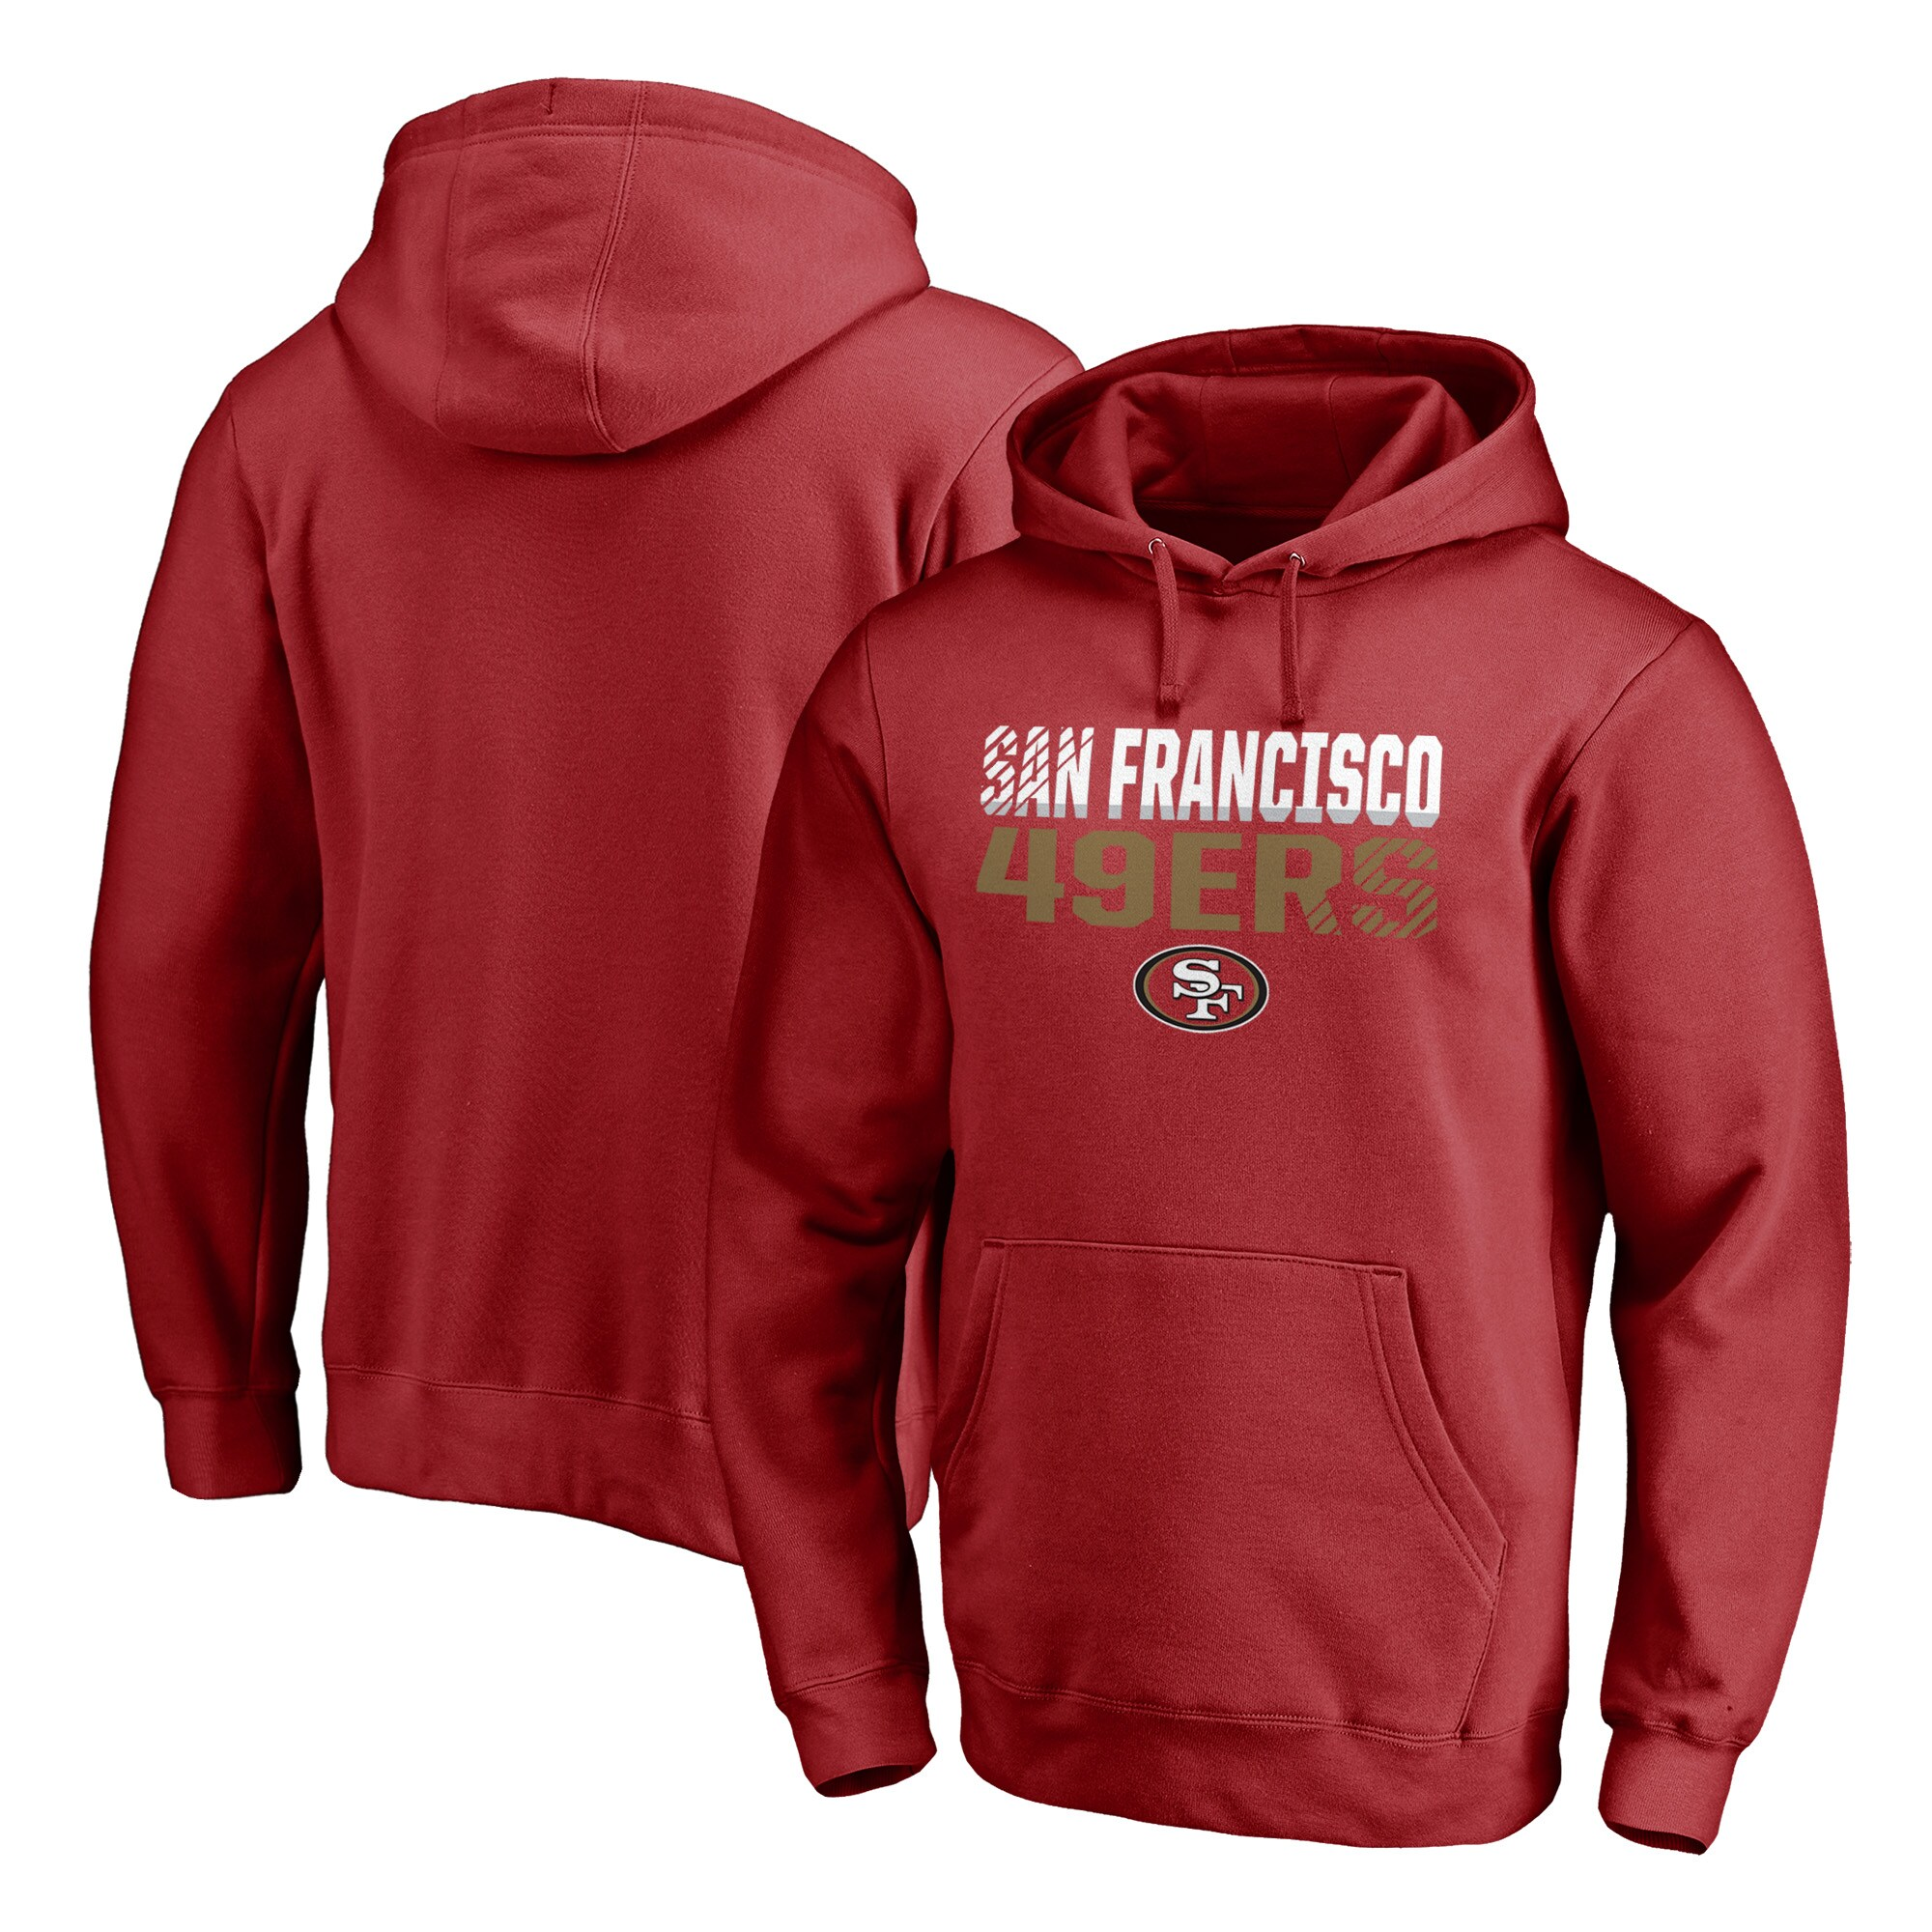 San Francisco 49ers NFL Pro Line by Fanatics Branded Iconic Collection Fade Out Pullover Hoodie - Scarlet